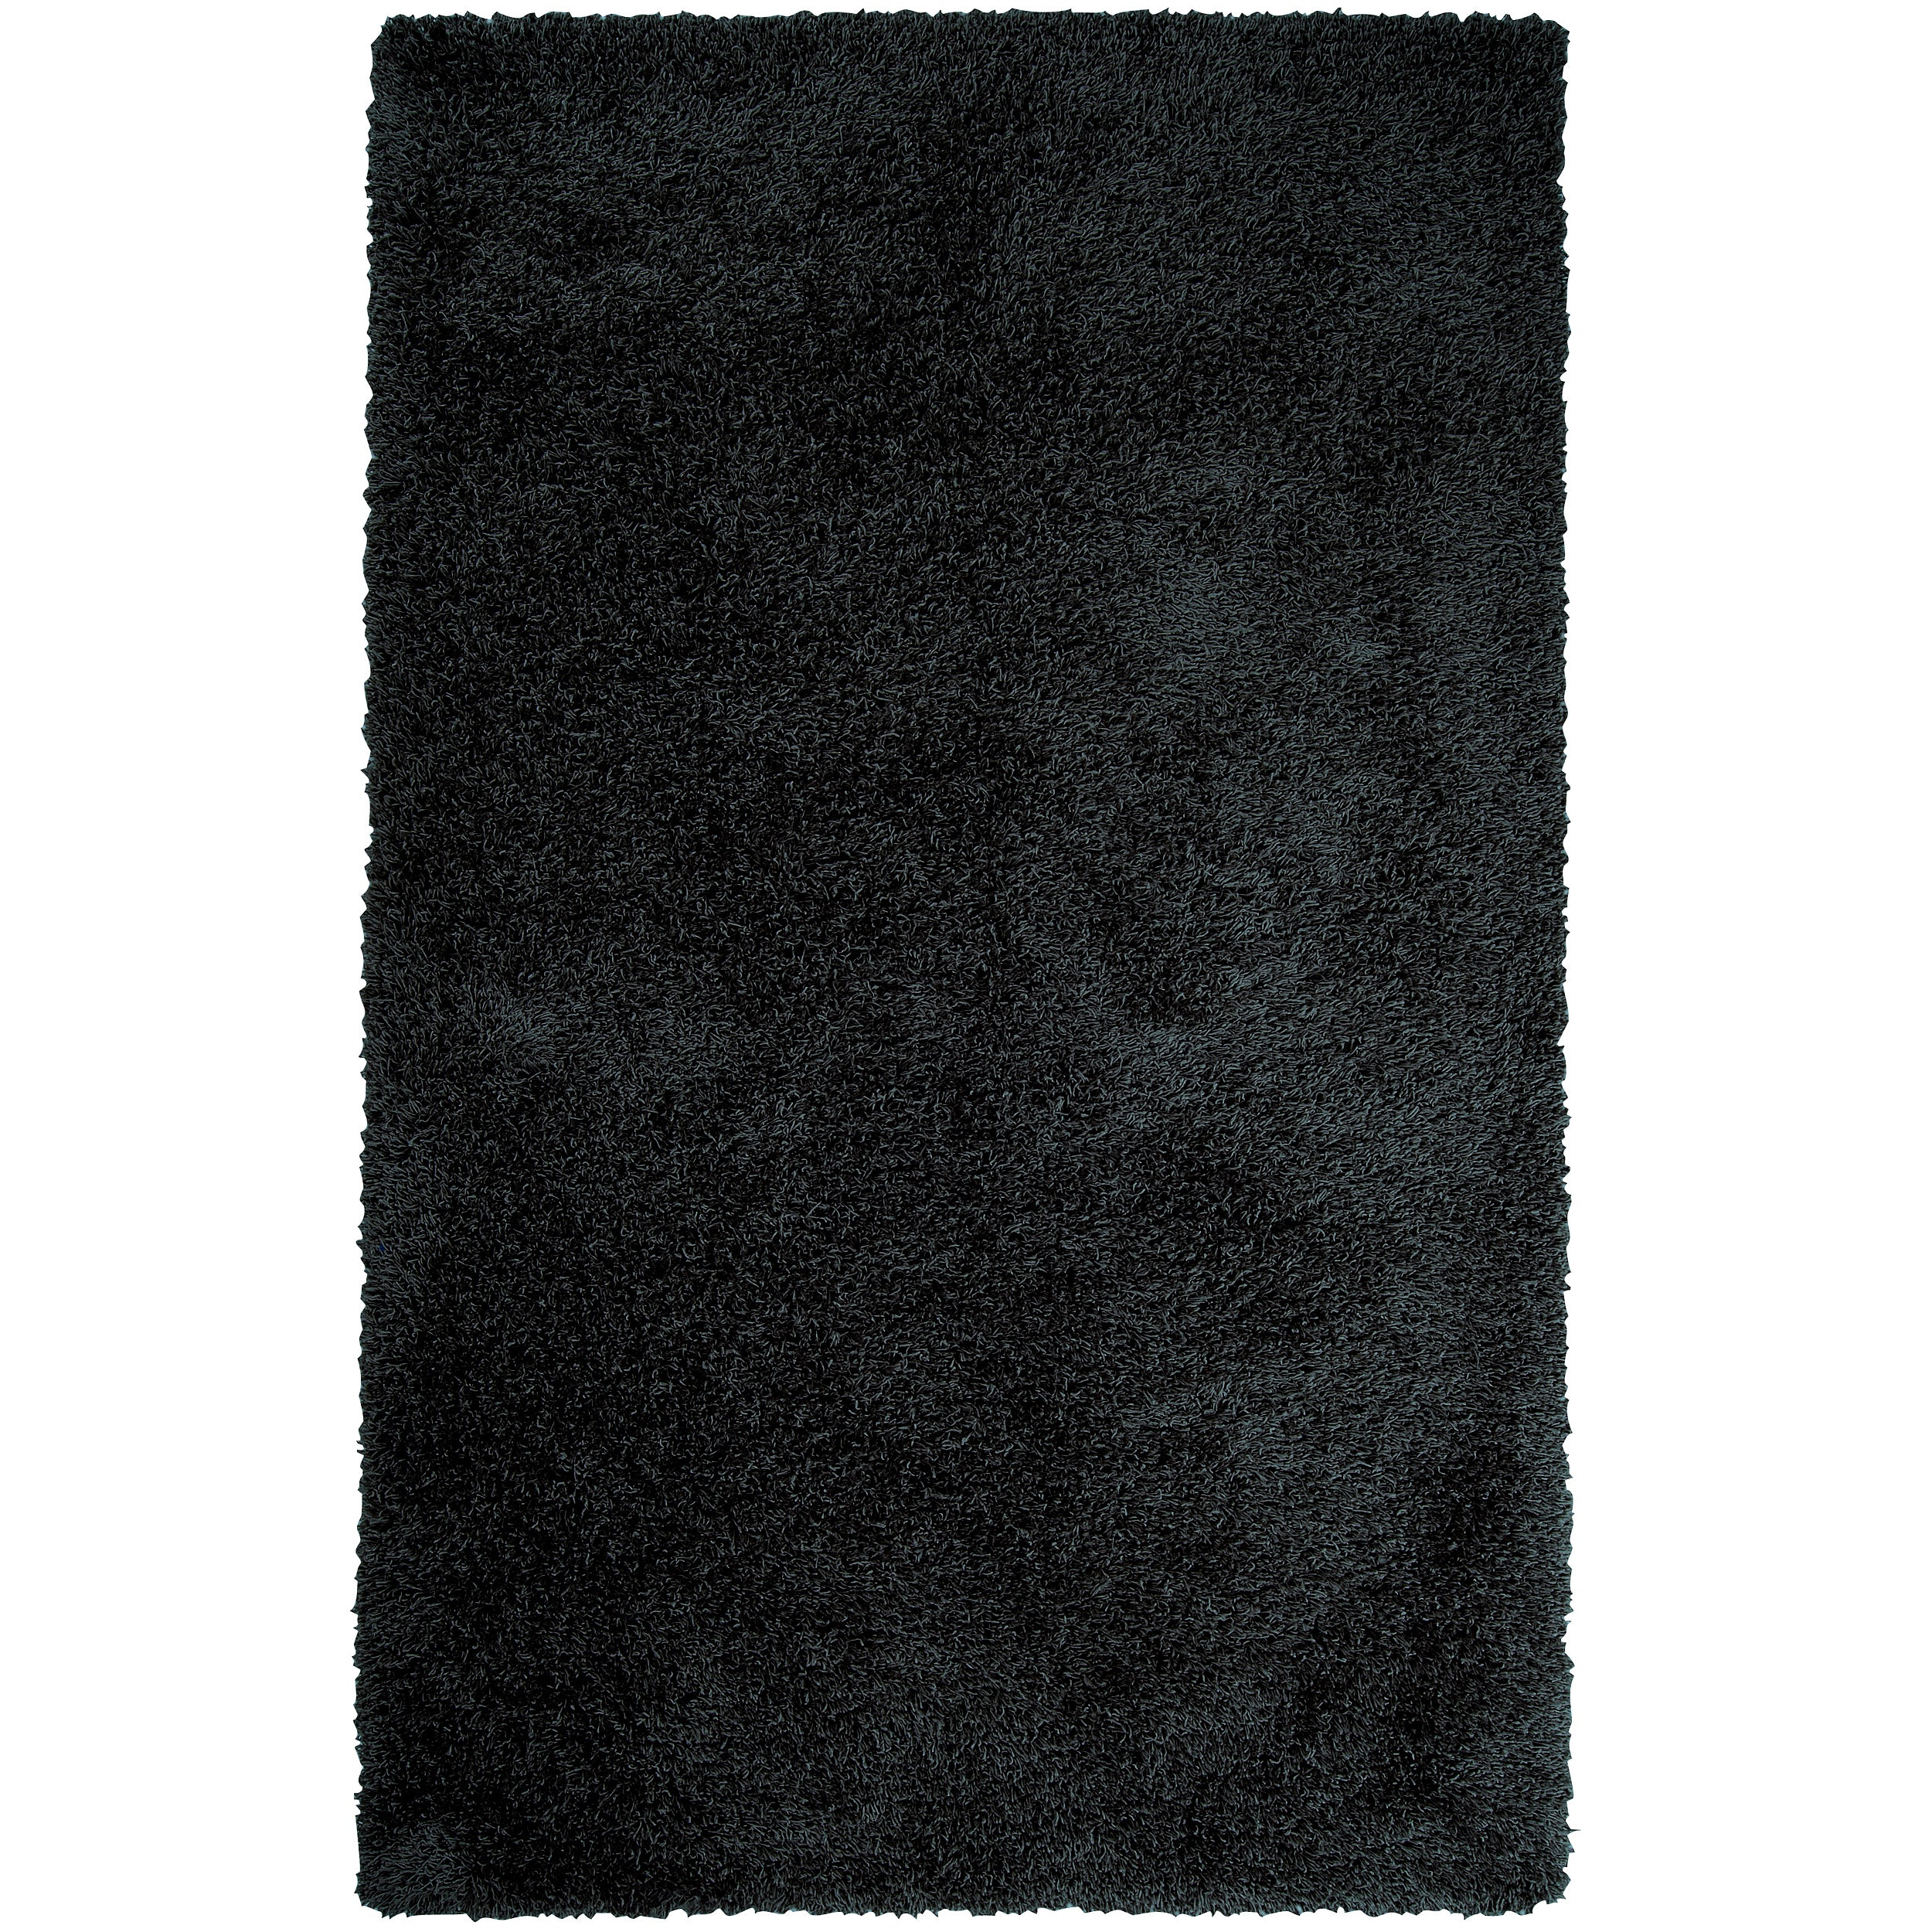 Expertly Woven Black Yaluk Super Soft Shag Rug (9' x 12')